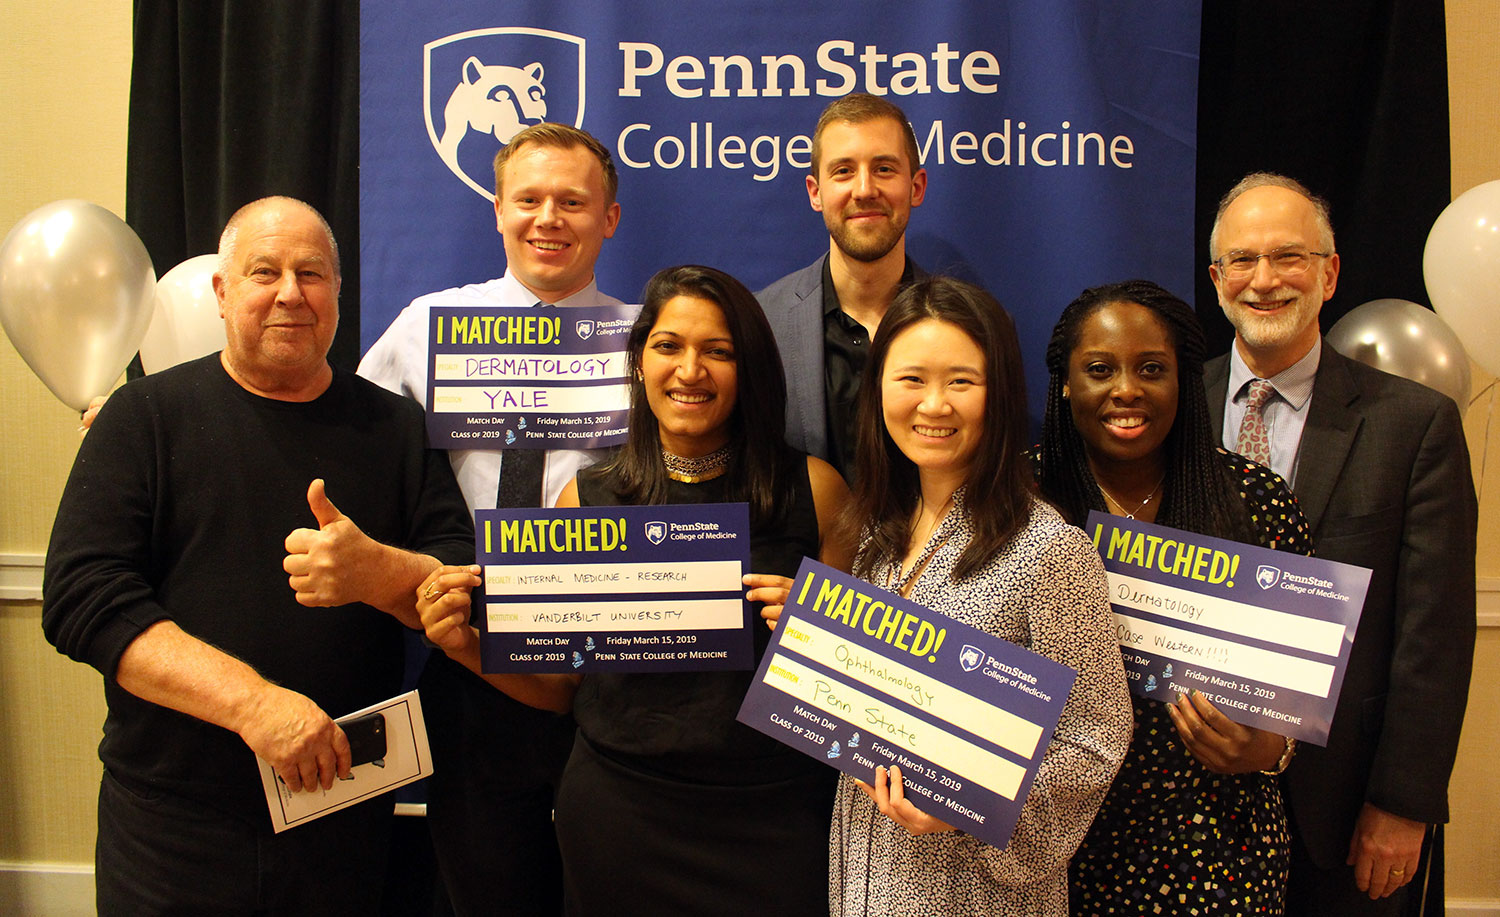 A group of seven people is seen standing in front of a Penn State College of Medicine banner. The students in the middle are holding signs that say